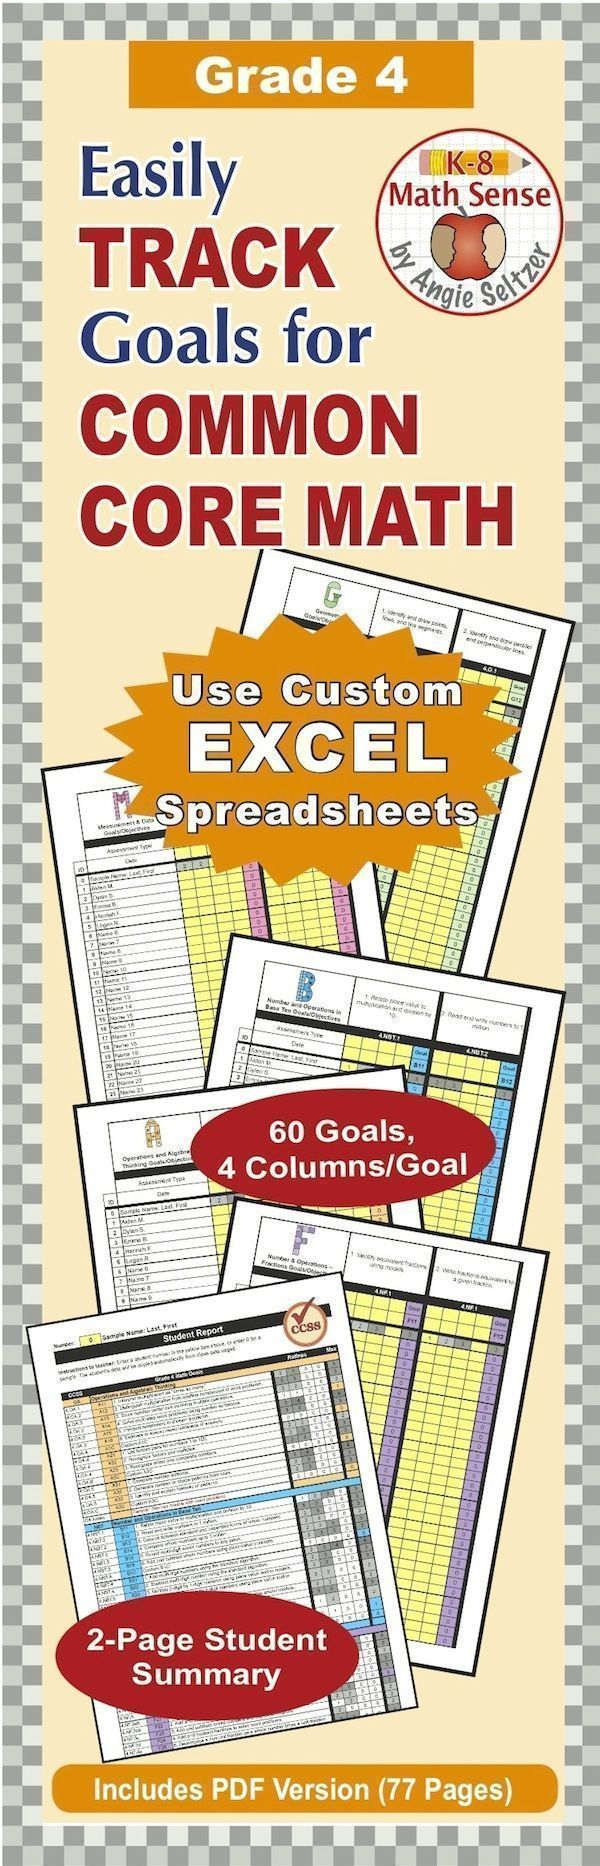 Use this customized Excel file to easily plan and track progress of all 60 Grade 4 math goals. View progress of the whole class or an individual student.~by Angie Seltzer